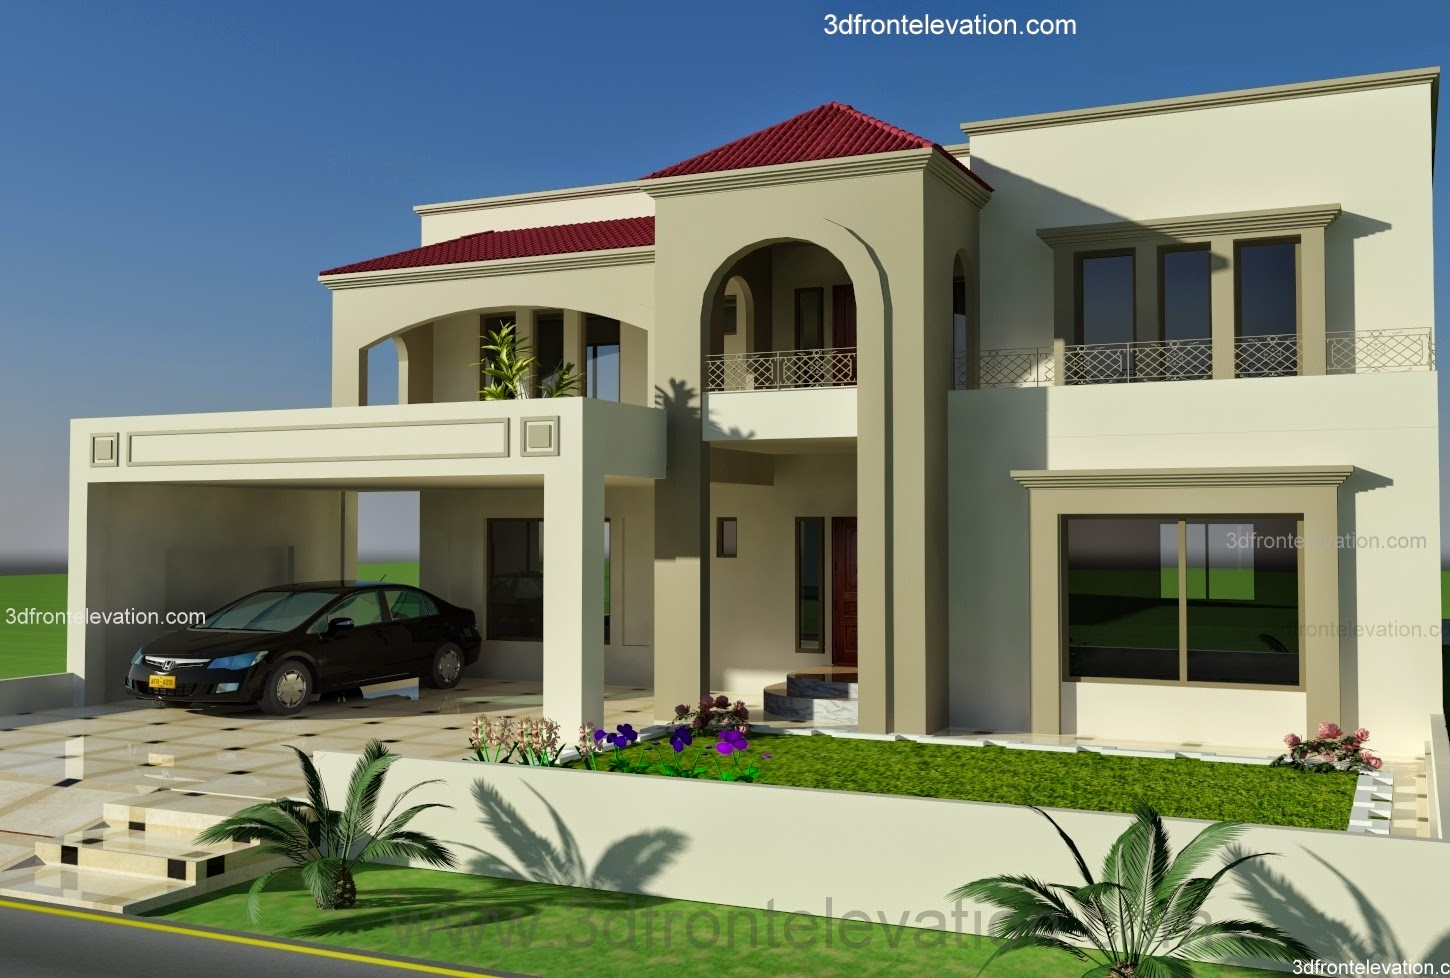 Architectural designs for house in pakistan joy studio for Home design ideas in pakistan